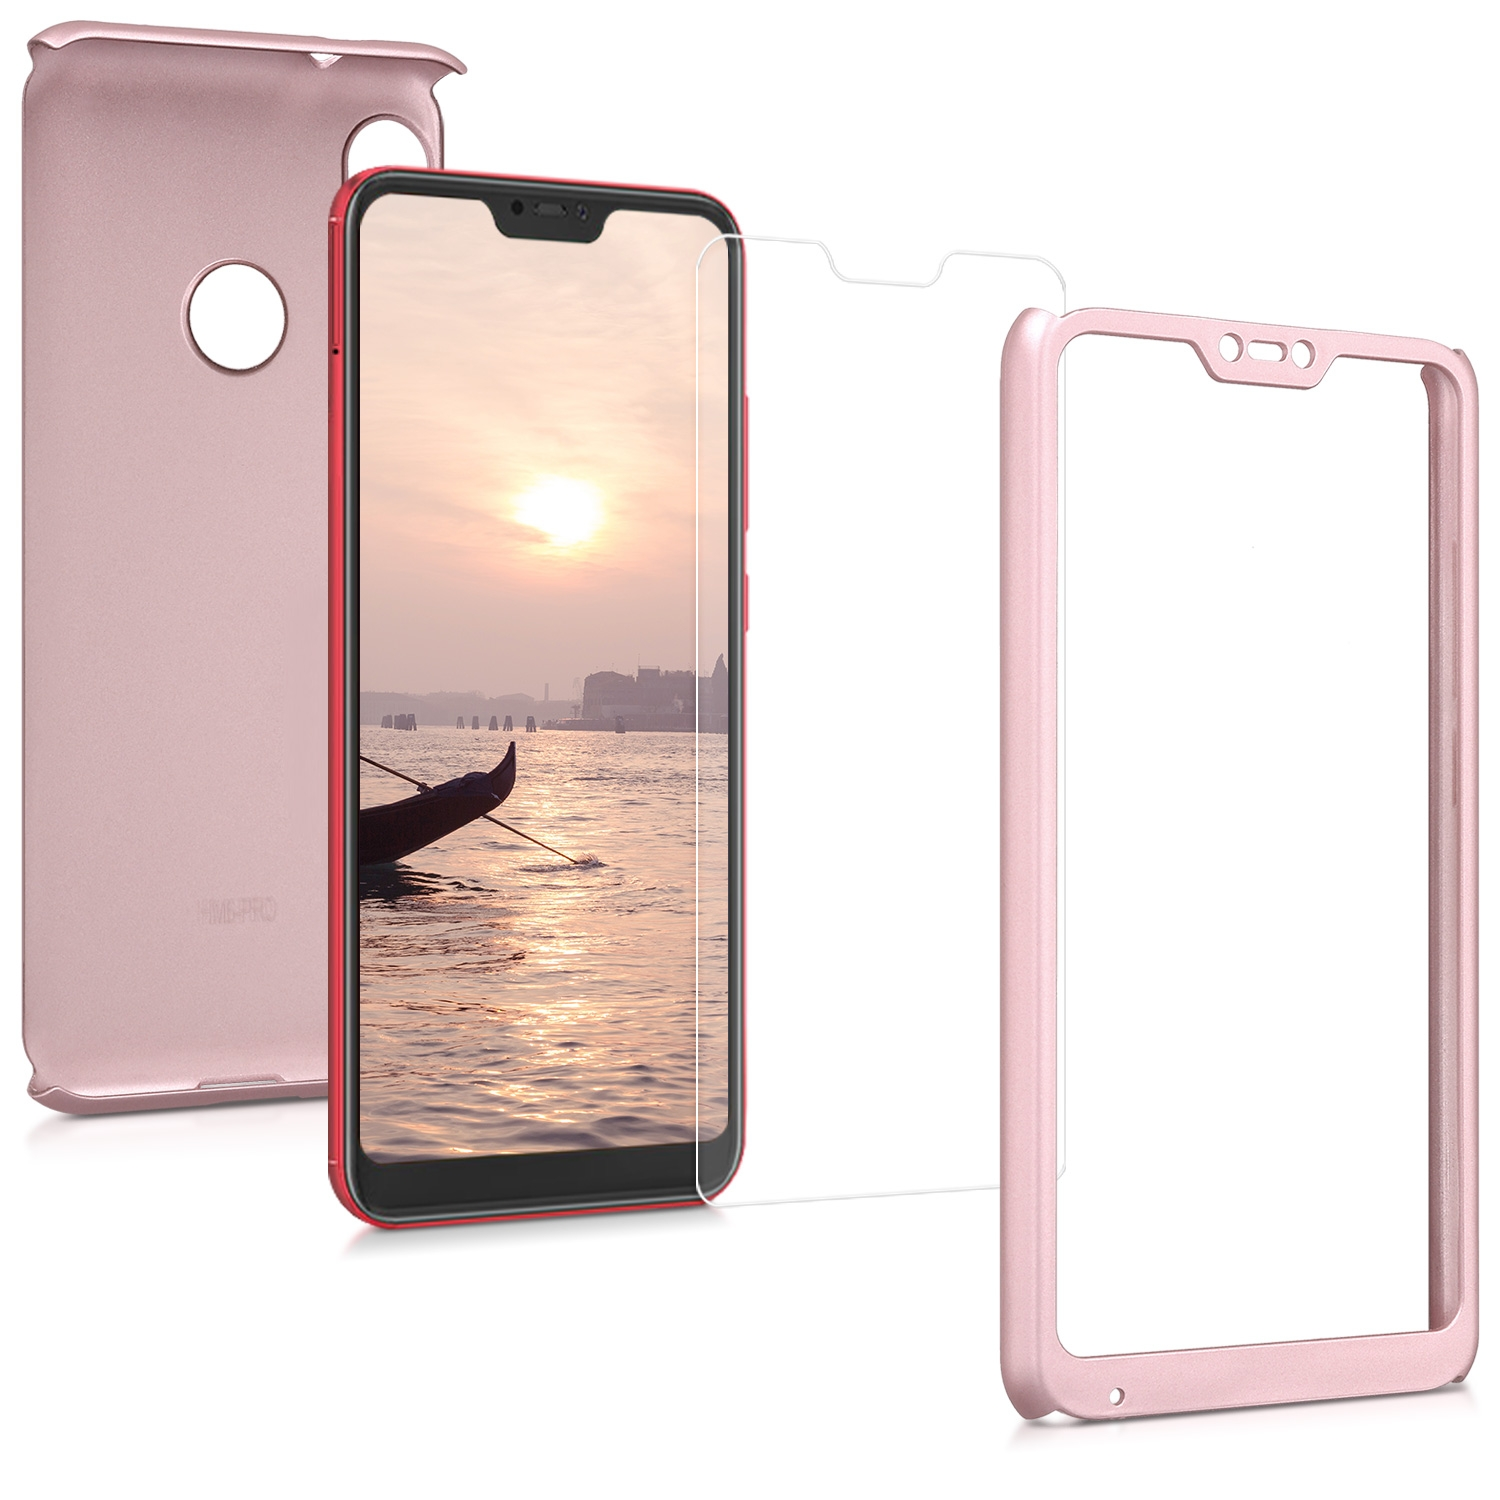 KW Θήκη Full Body για Xiaomi Mi A2 Lite / Redmi 6 Pro & Tempered Glass - Metallic Rosegold (46065.31)